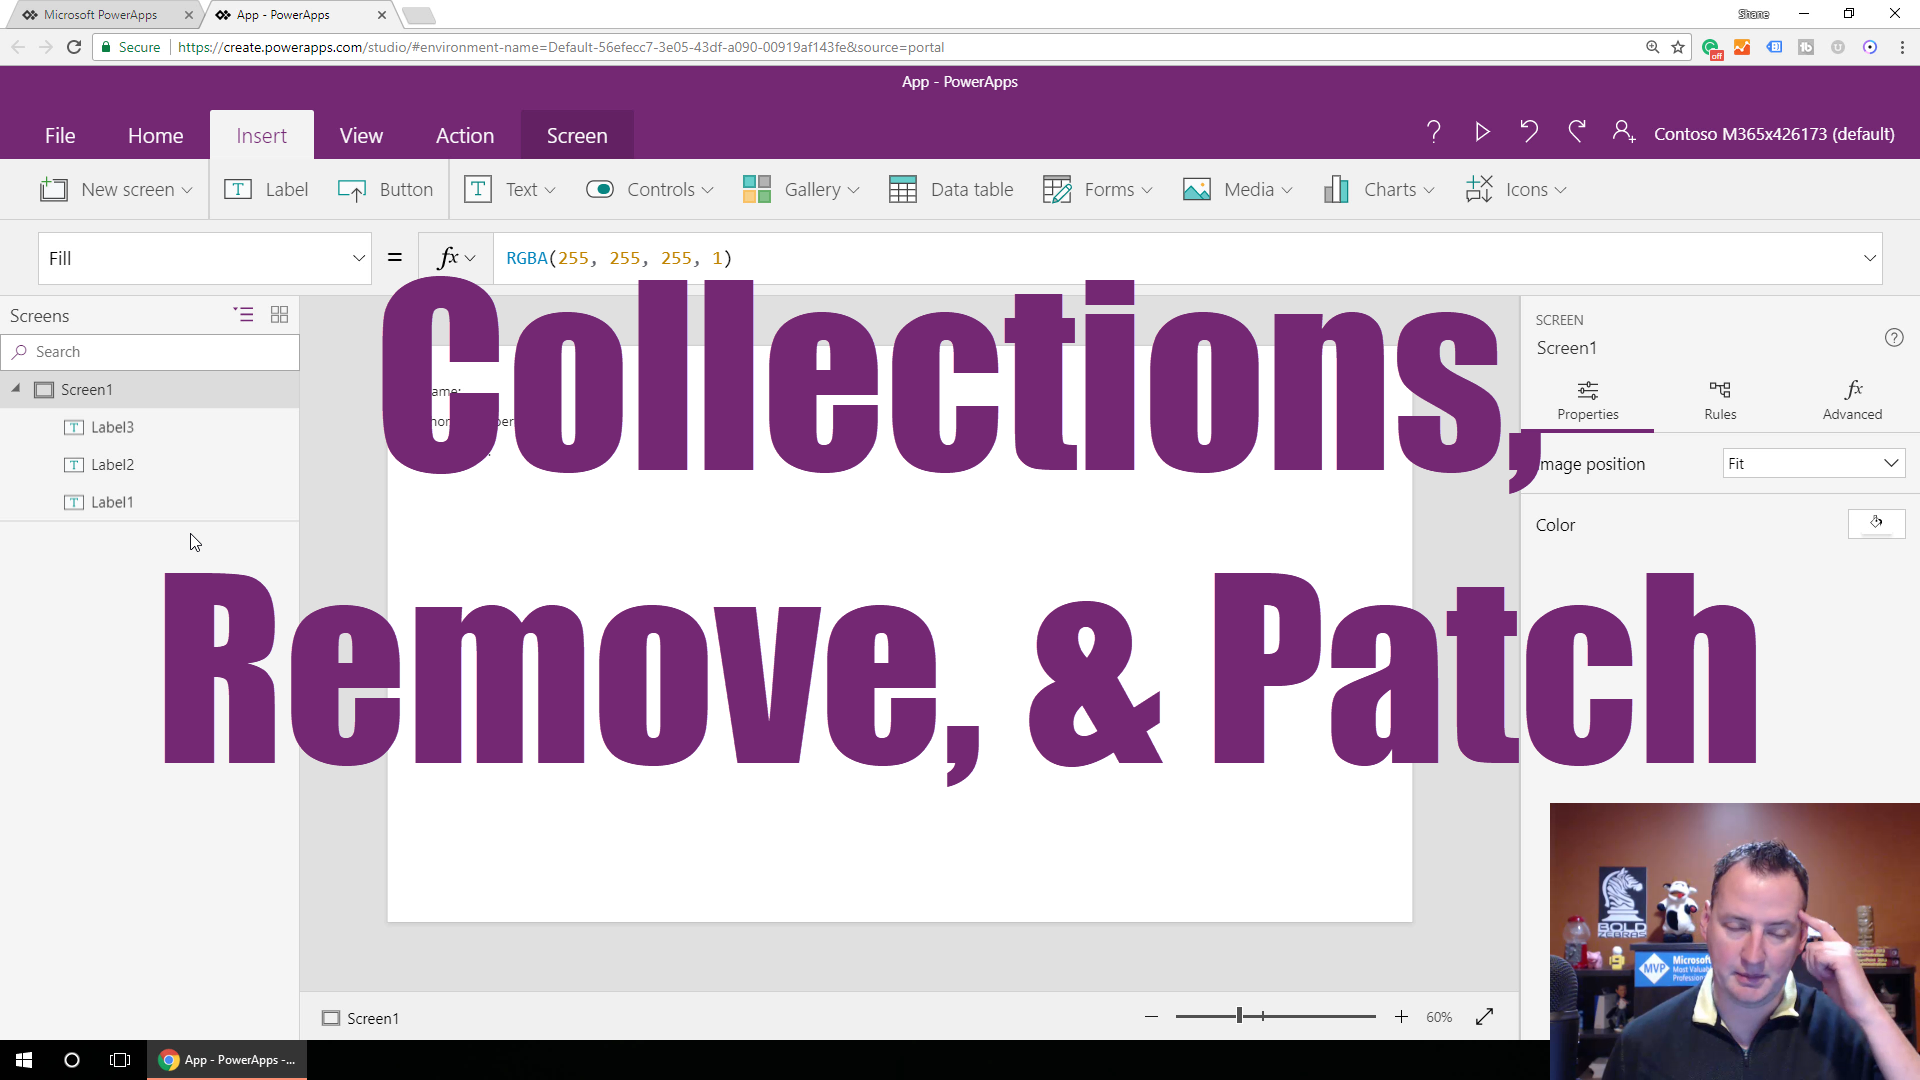 Learn about PowerApps Collections